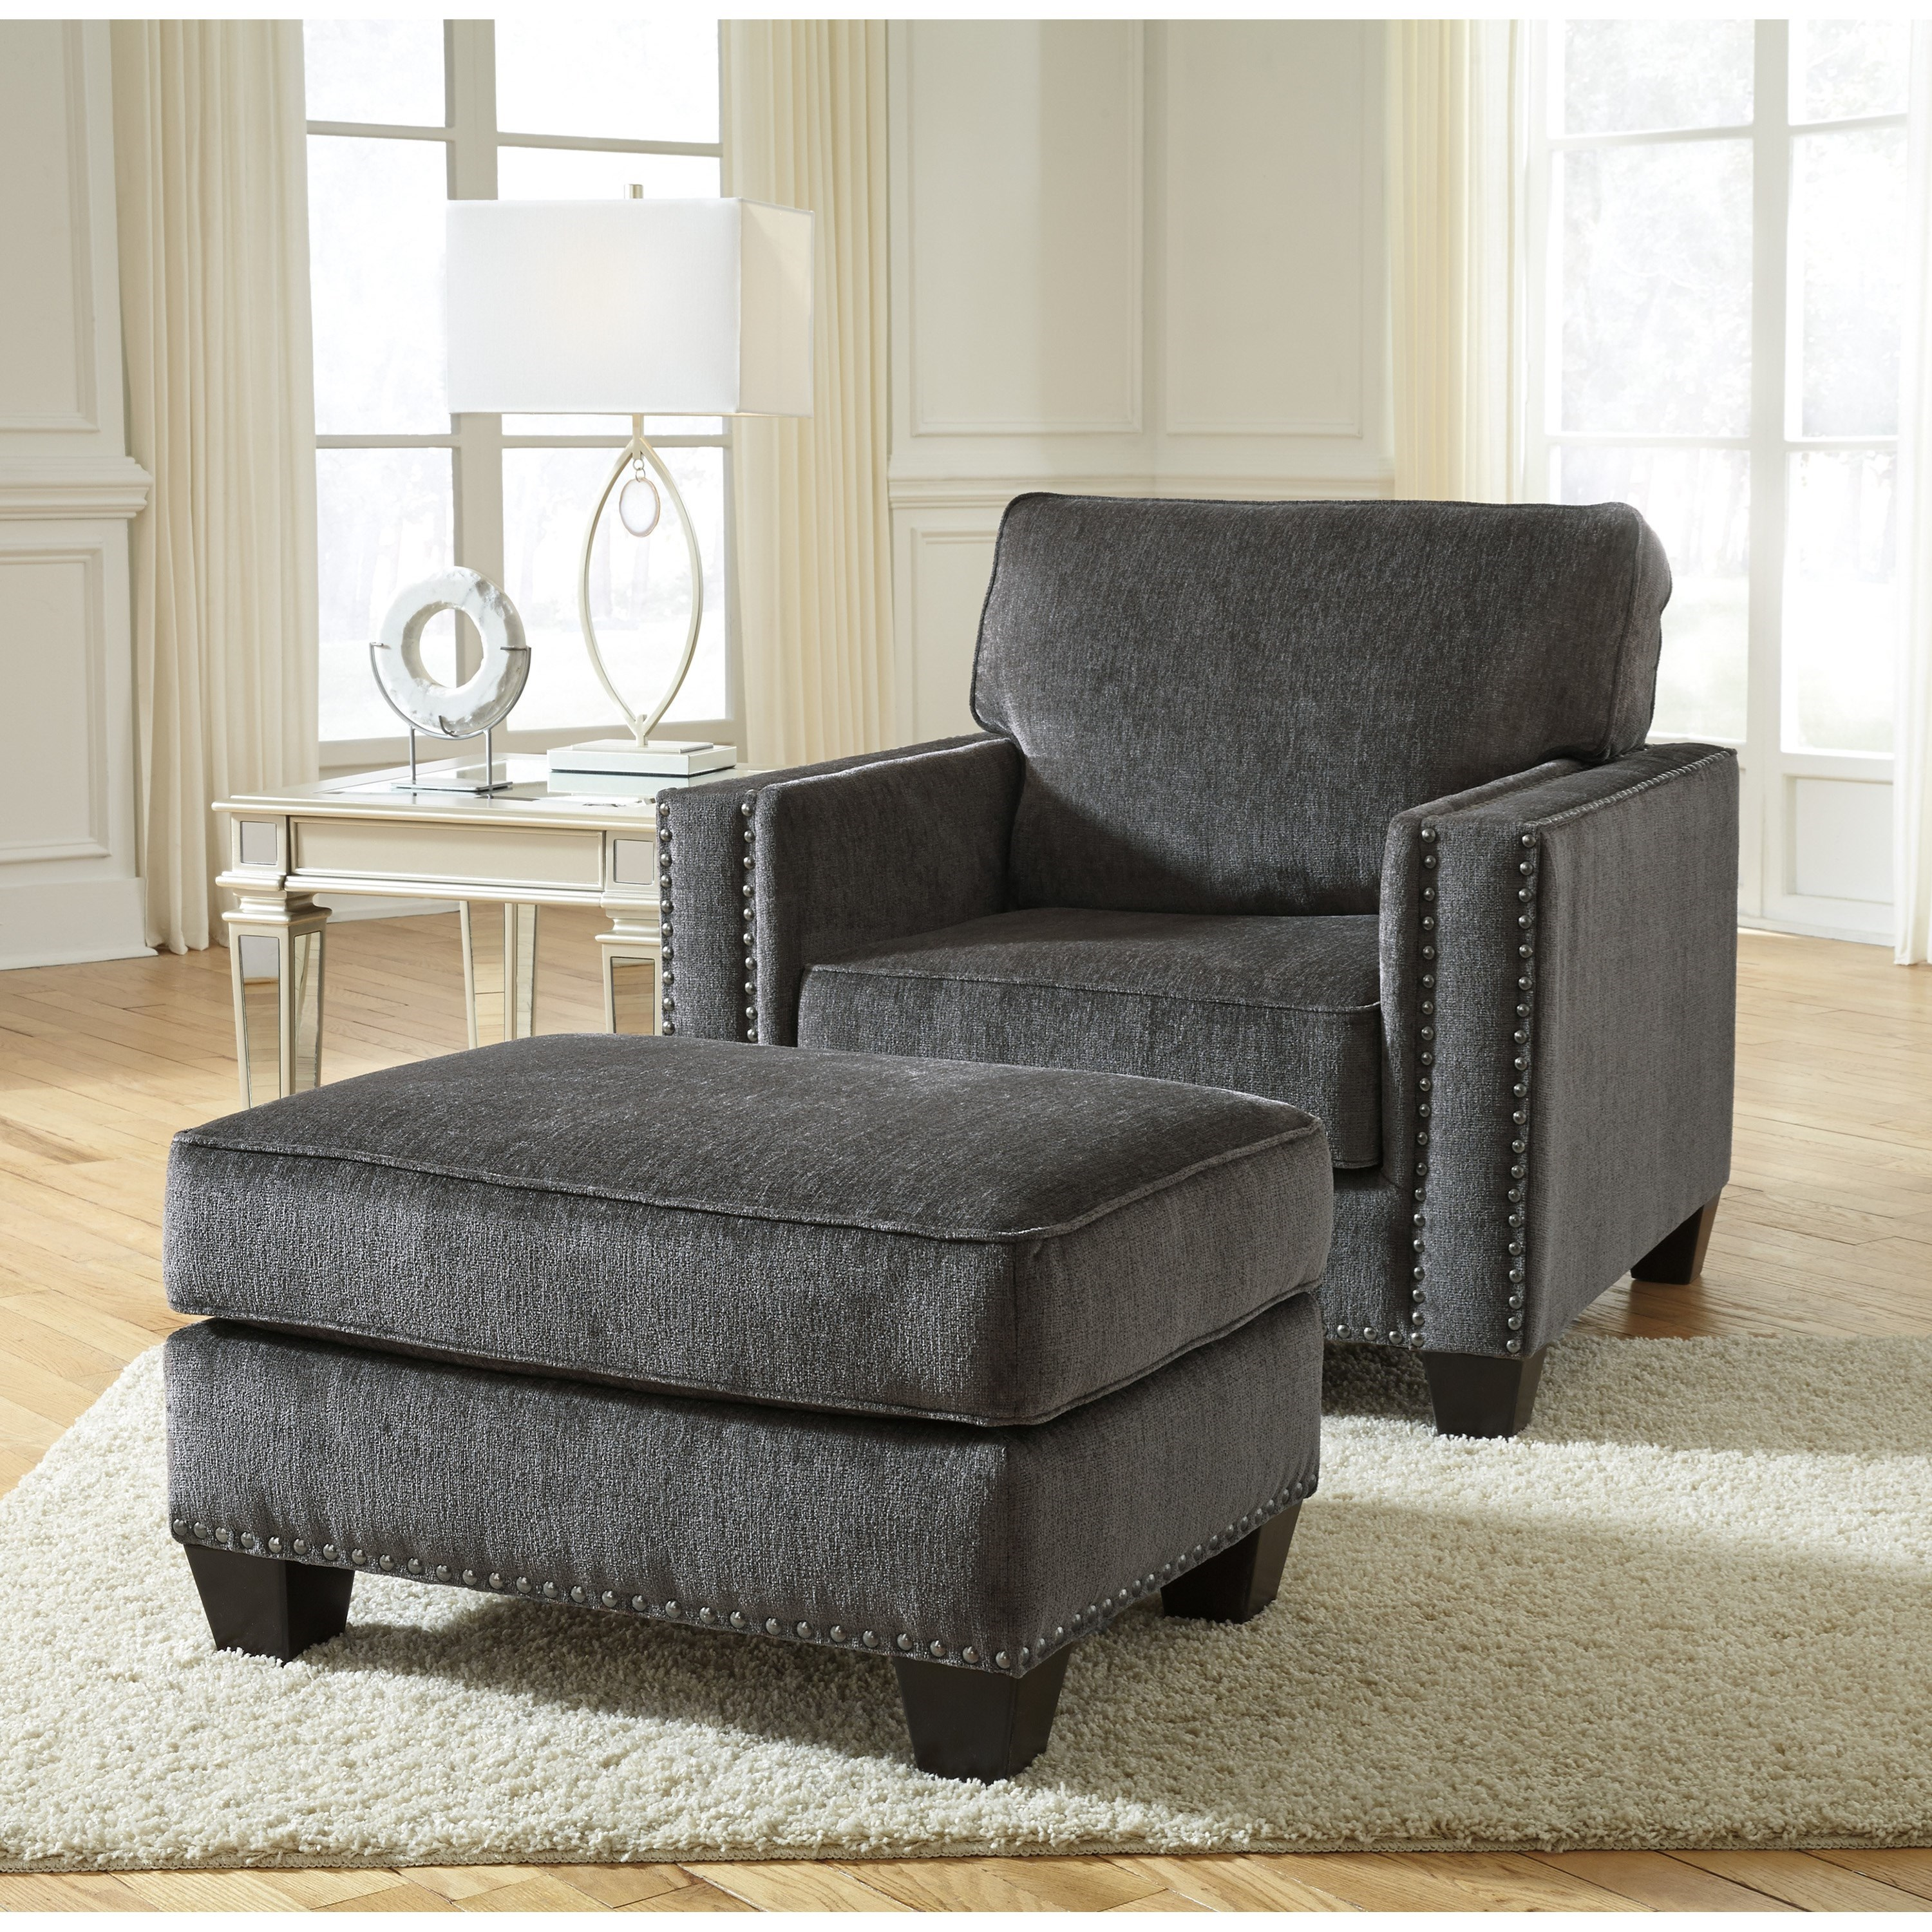 Gavril Chair and Ottoman by Benchcraft at Walker's Furniture